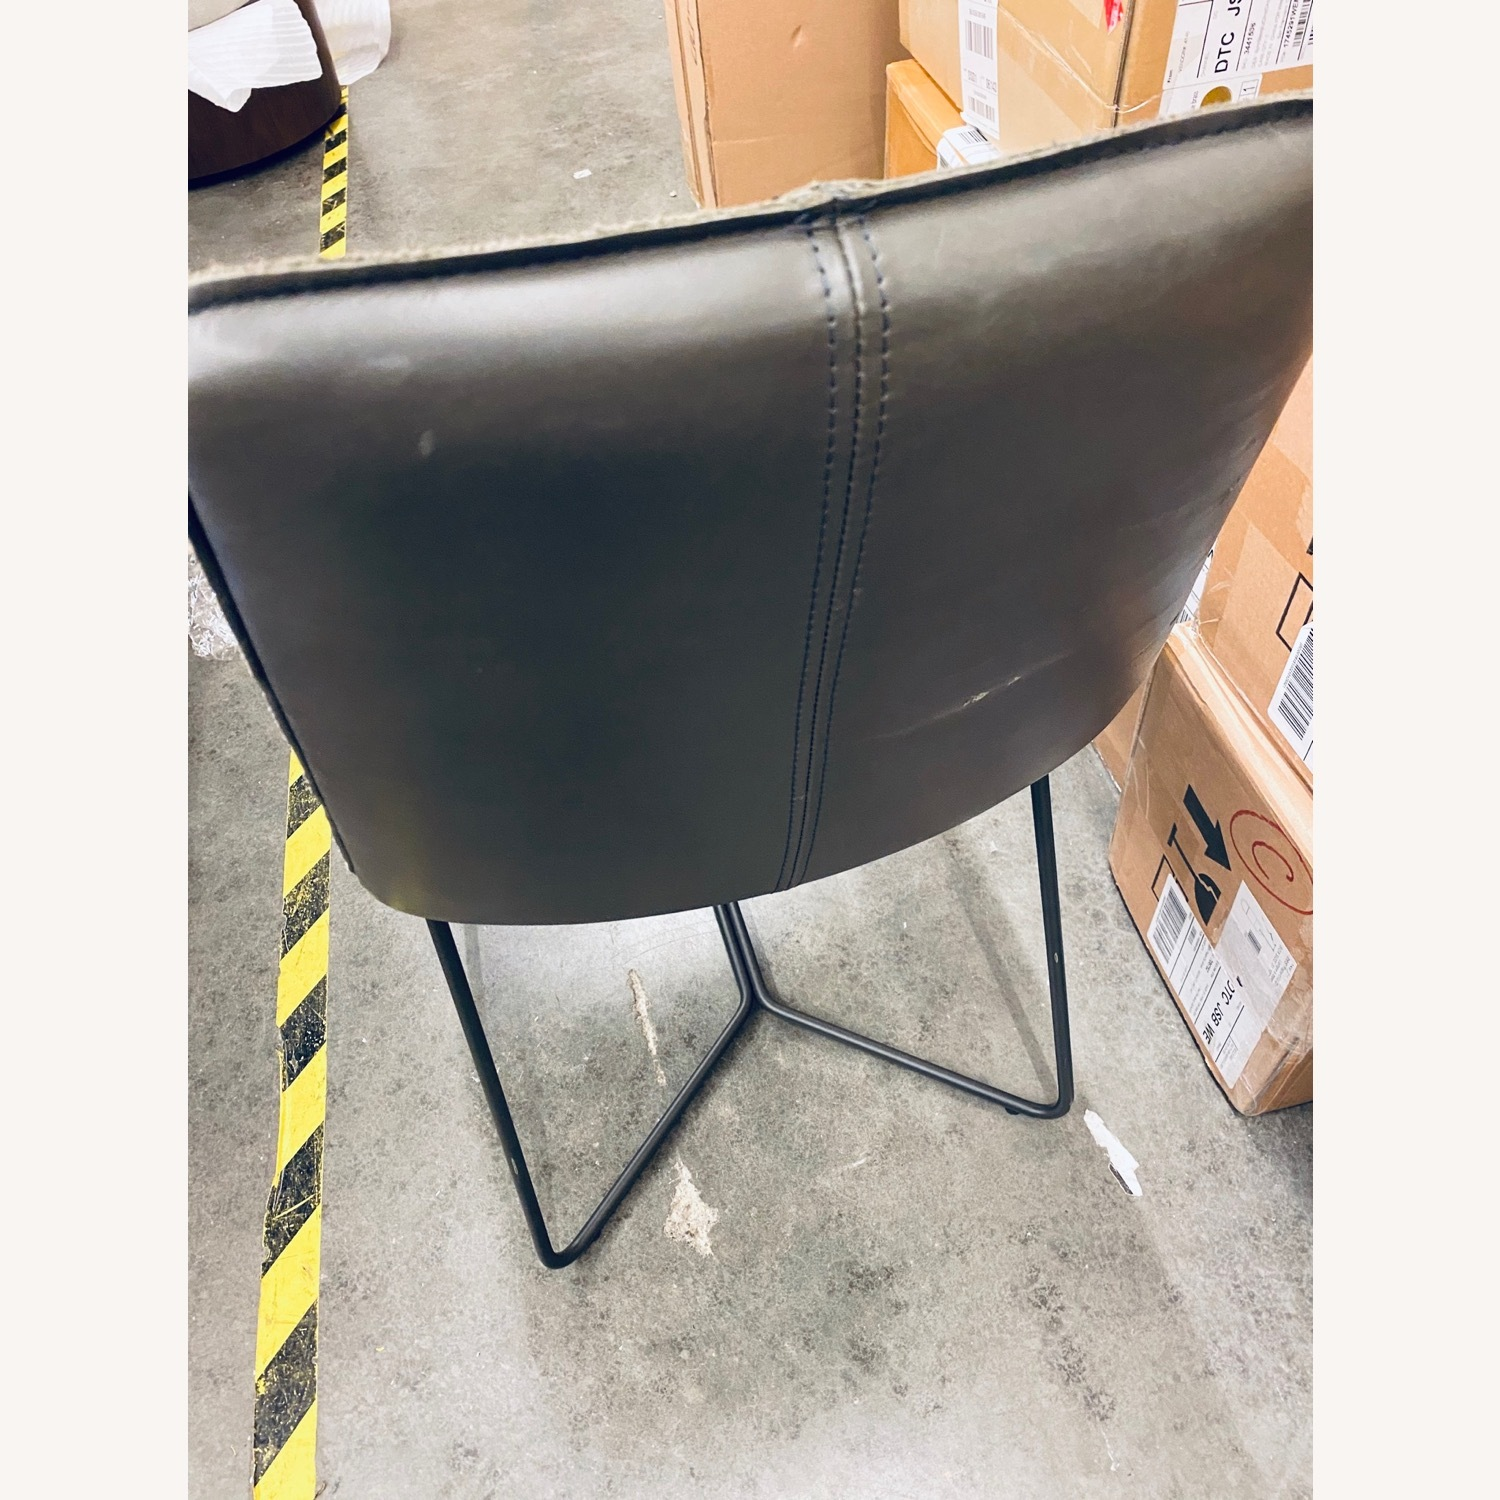 West Elm Slope Dining Chair in Charcoal Leather - image-8